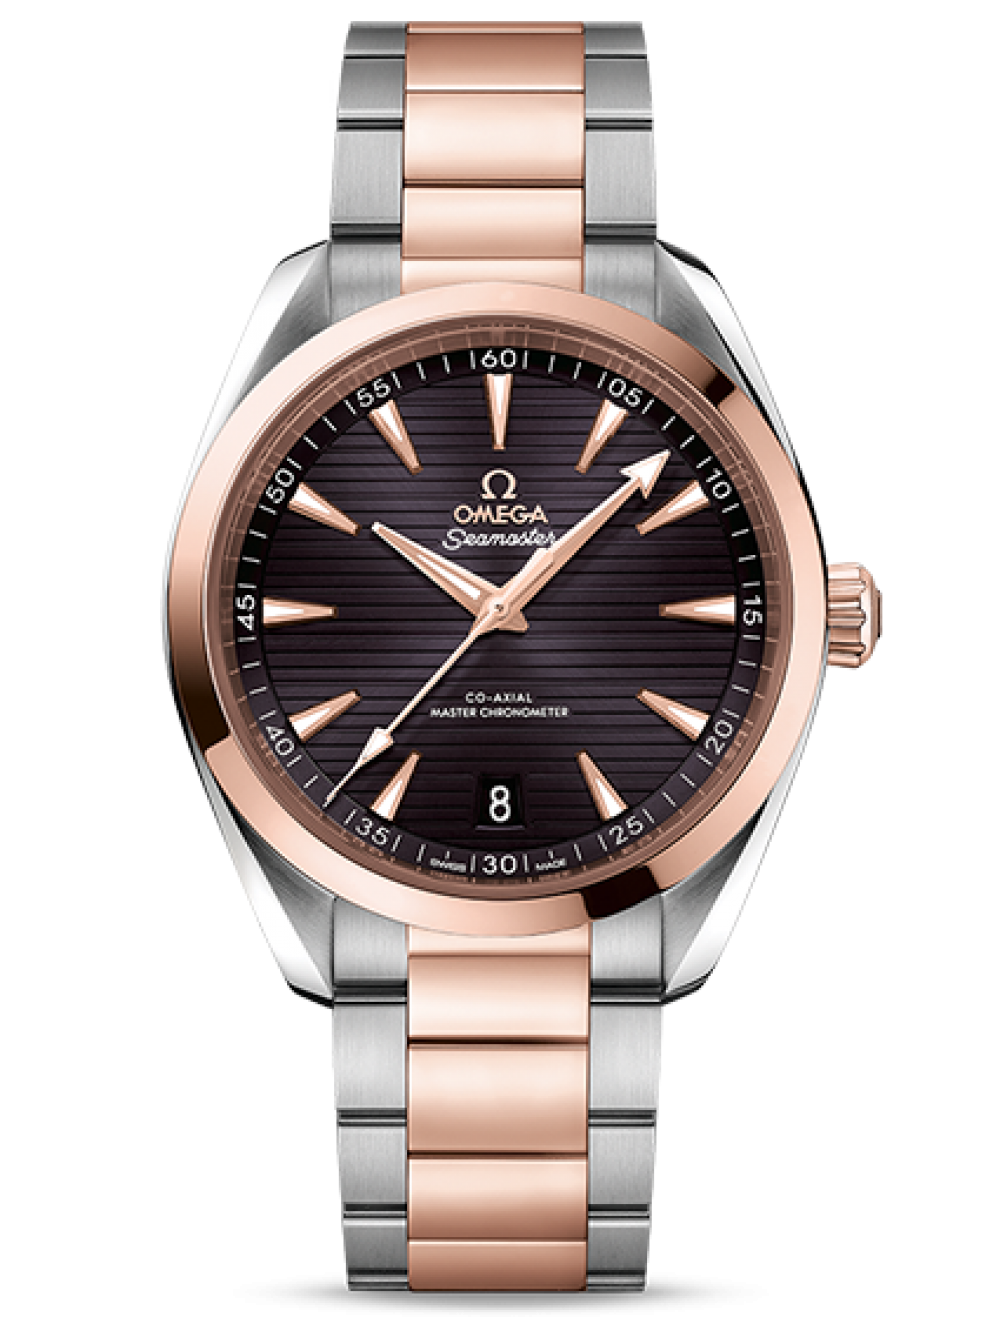 OMEGA SEAMASTER AQUA TERRA CO-AXIAL 41 MM 220.20.41.21.06.001